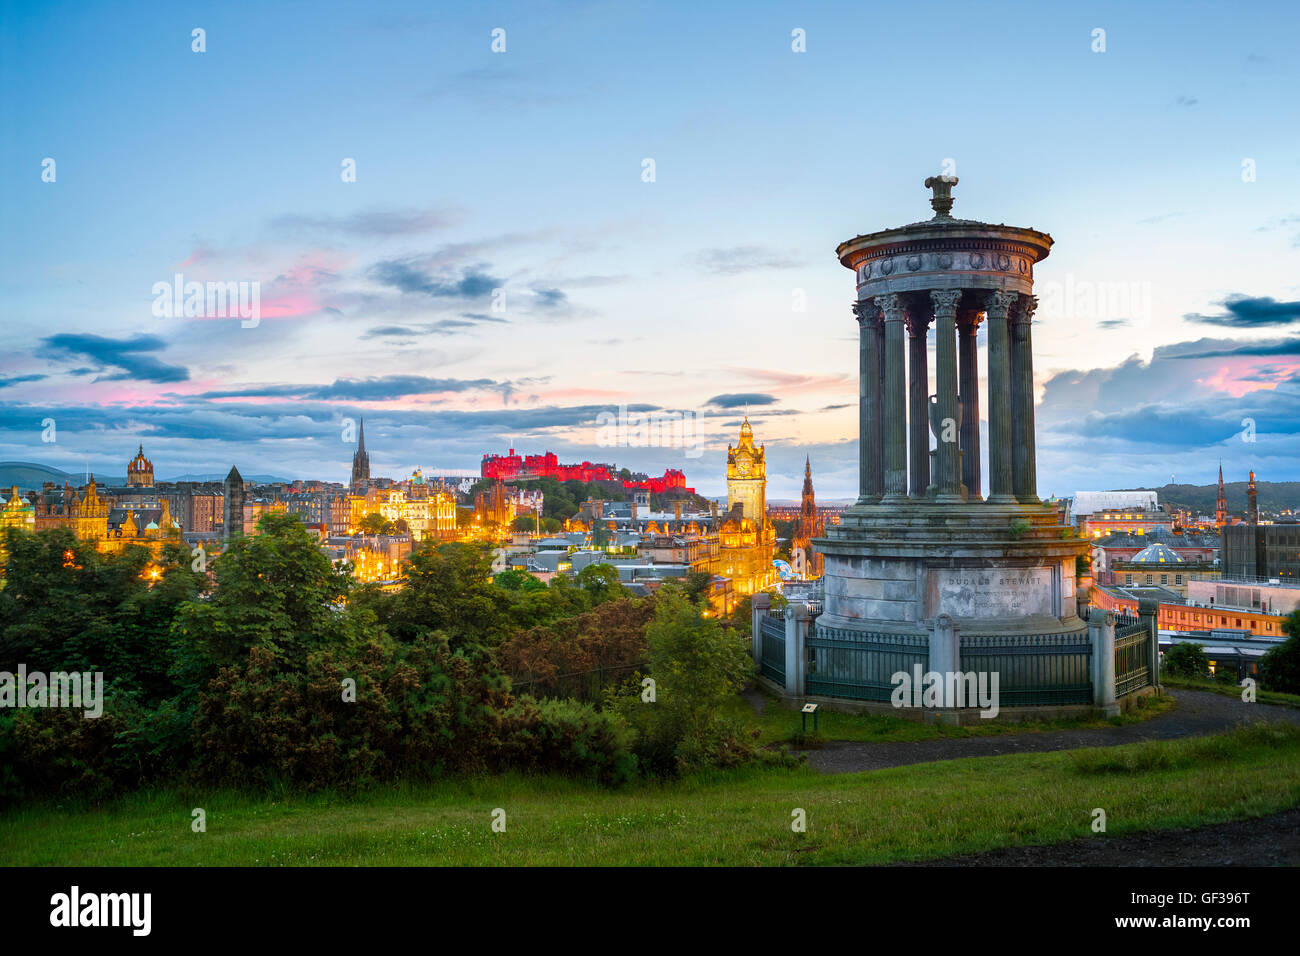 https://c7.alamy.com/comp/GF396T/edinburgh-skyline-from-canton-hill-with-edinburgh-castle-and-the-old-GF396T.jpg